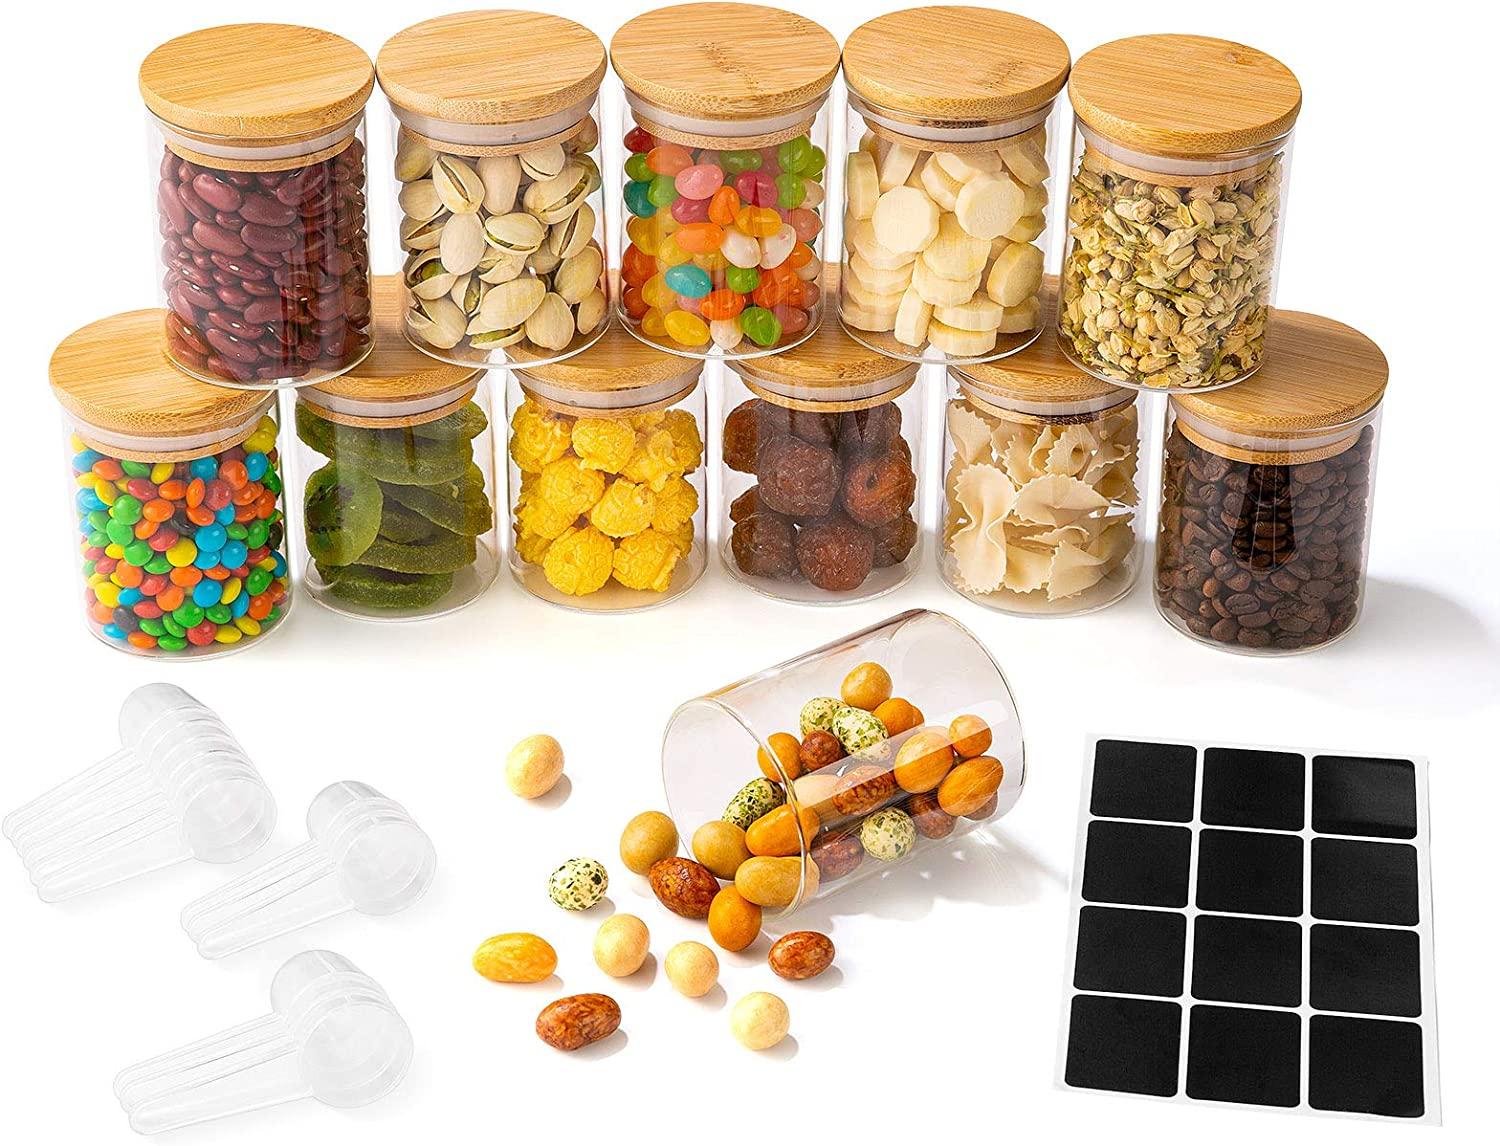 Yangbaga 12 Piece Glass Jars Set, 7oz Glass Jars with Natural Bamboo Lids with 12 Plastic spoons and Labels for Home Kitchen - Tea, Flour, Cookie, Candy & Spices - Small Food Storage Airtight Canister Sets for Kitchen Pantry Organization